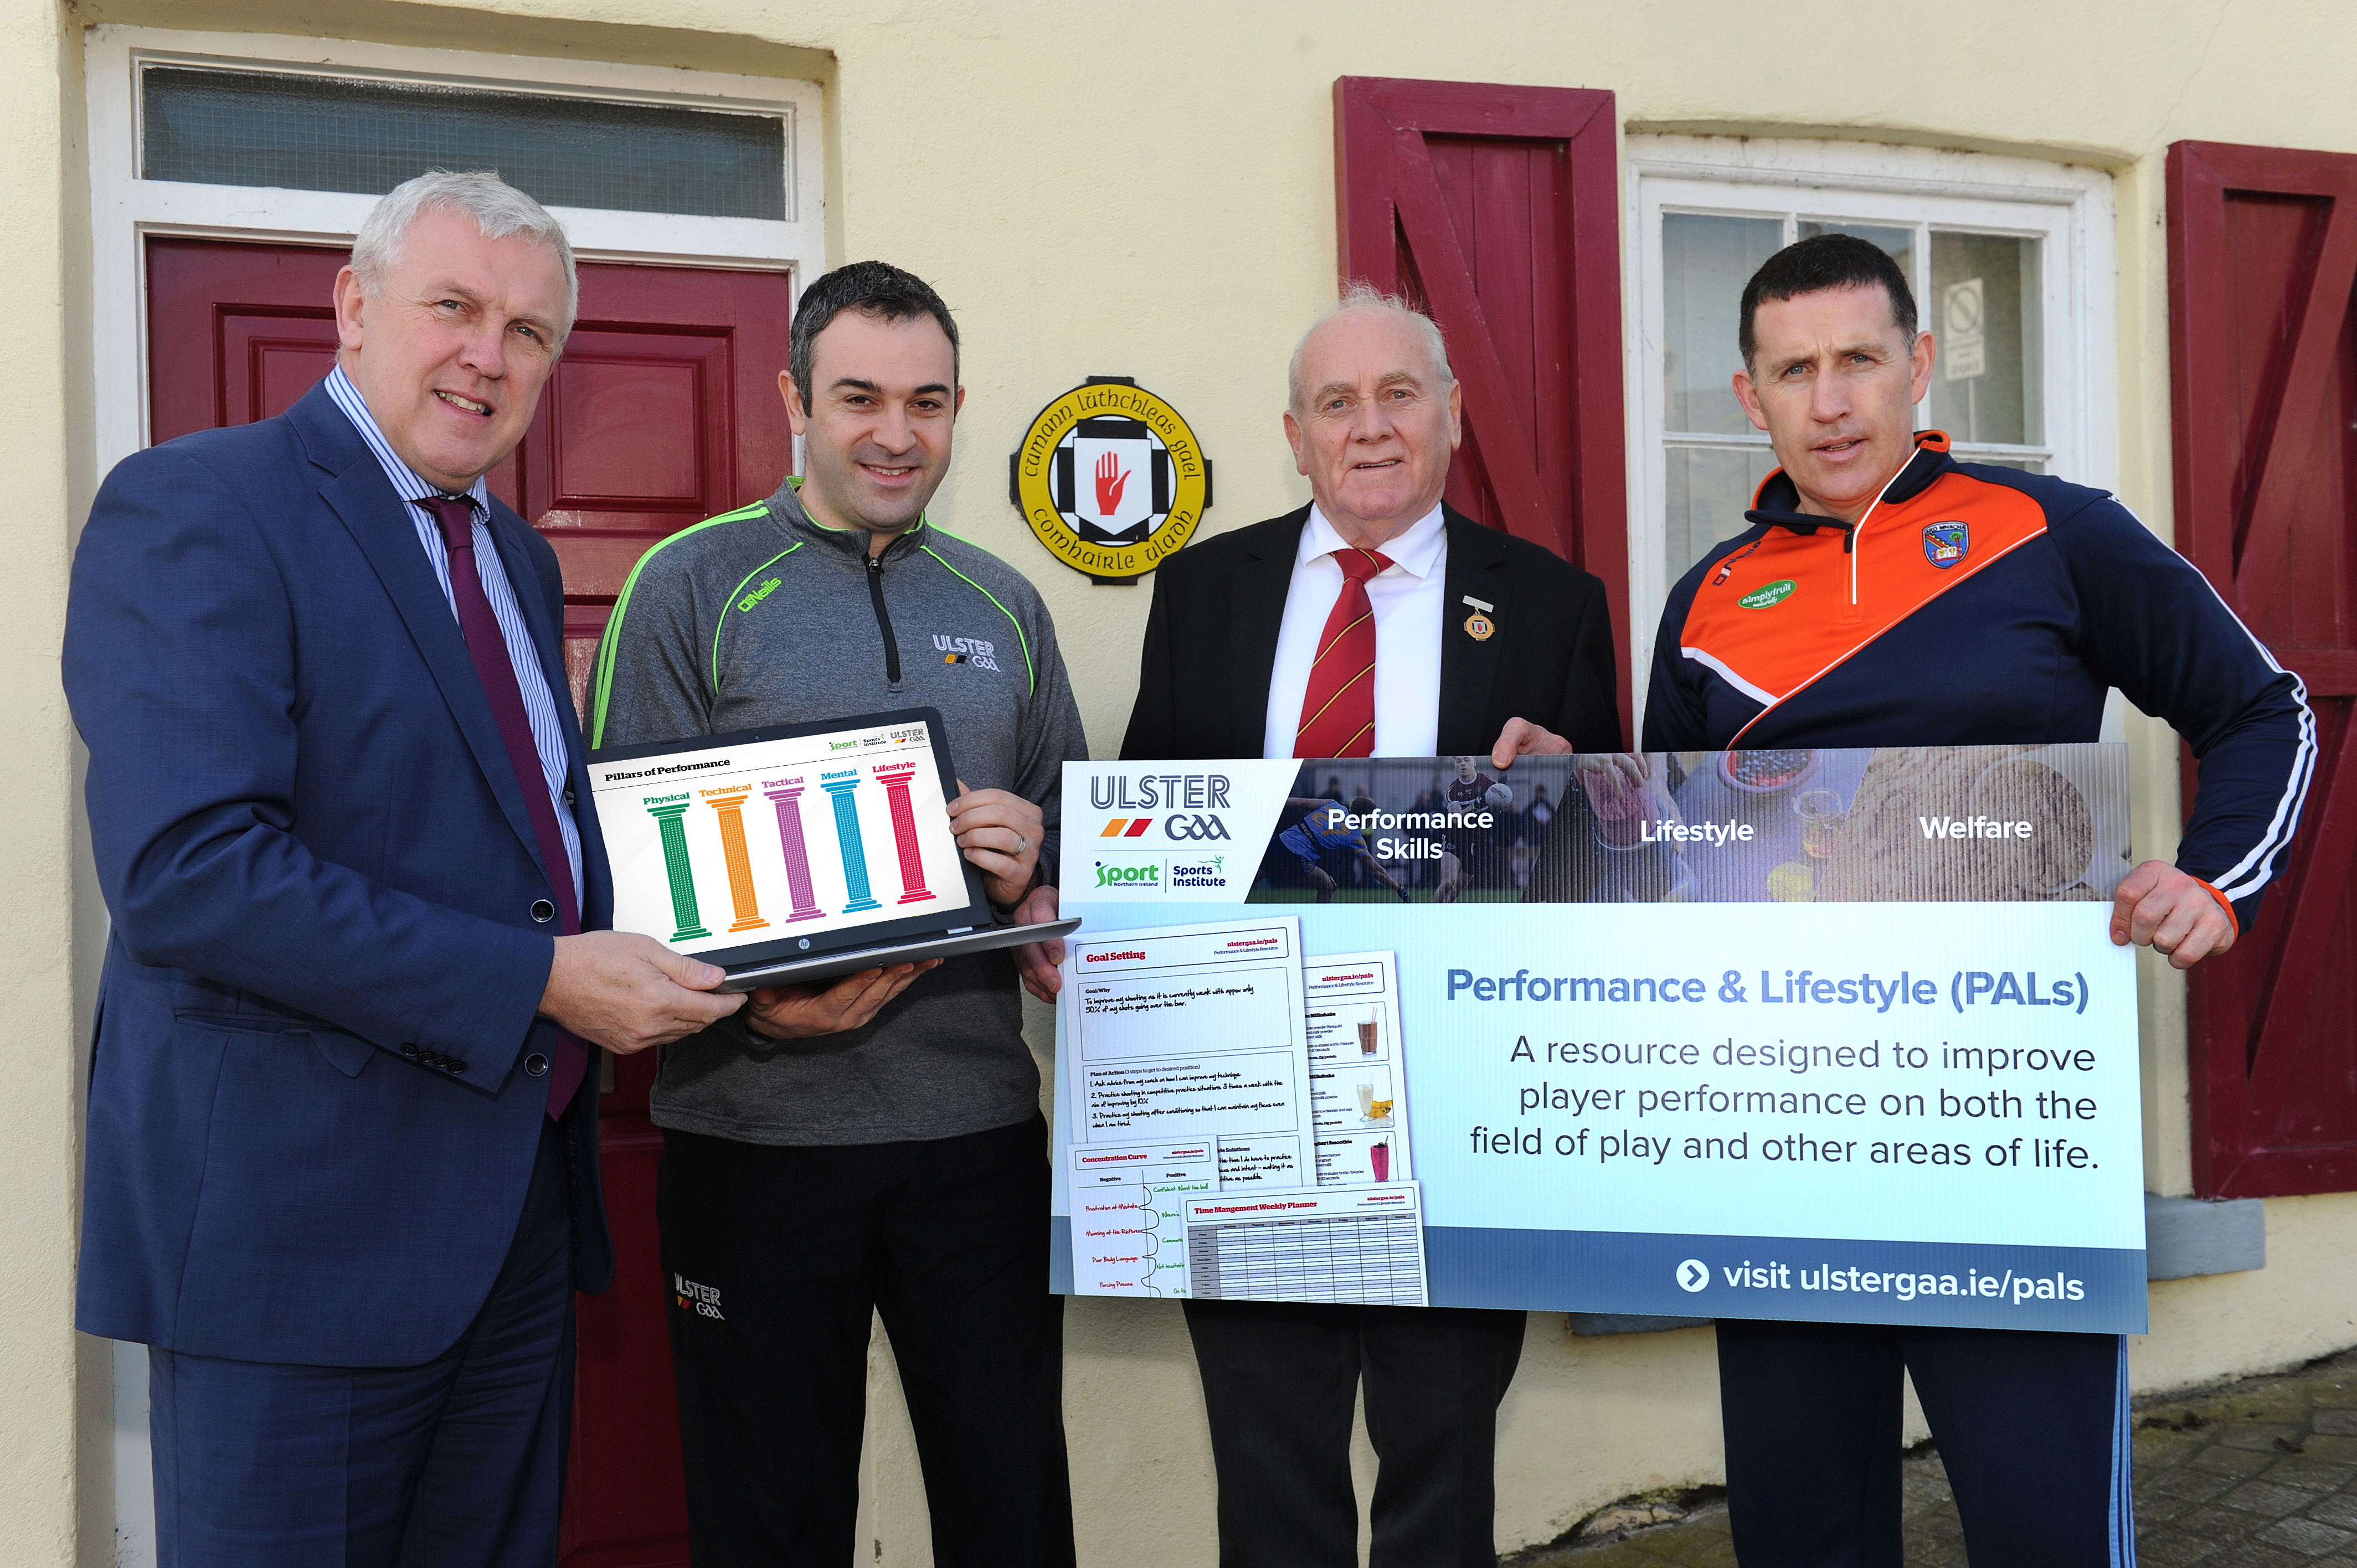 Ulster GAA launch Performance and Lifestyle website